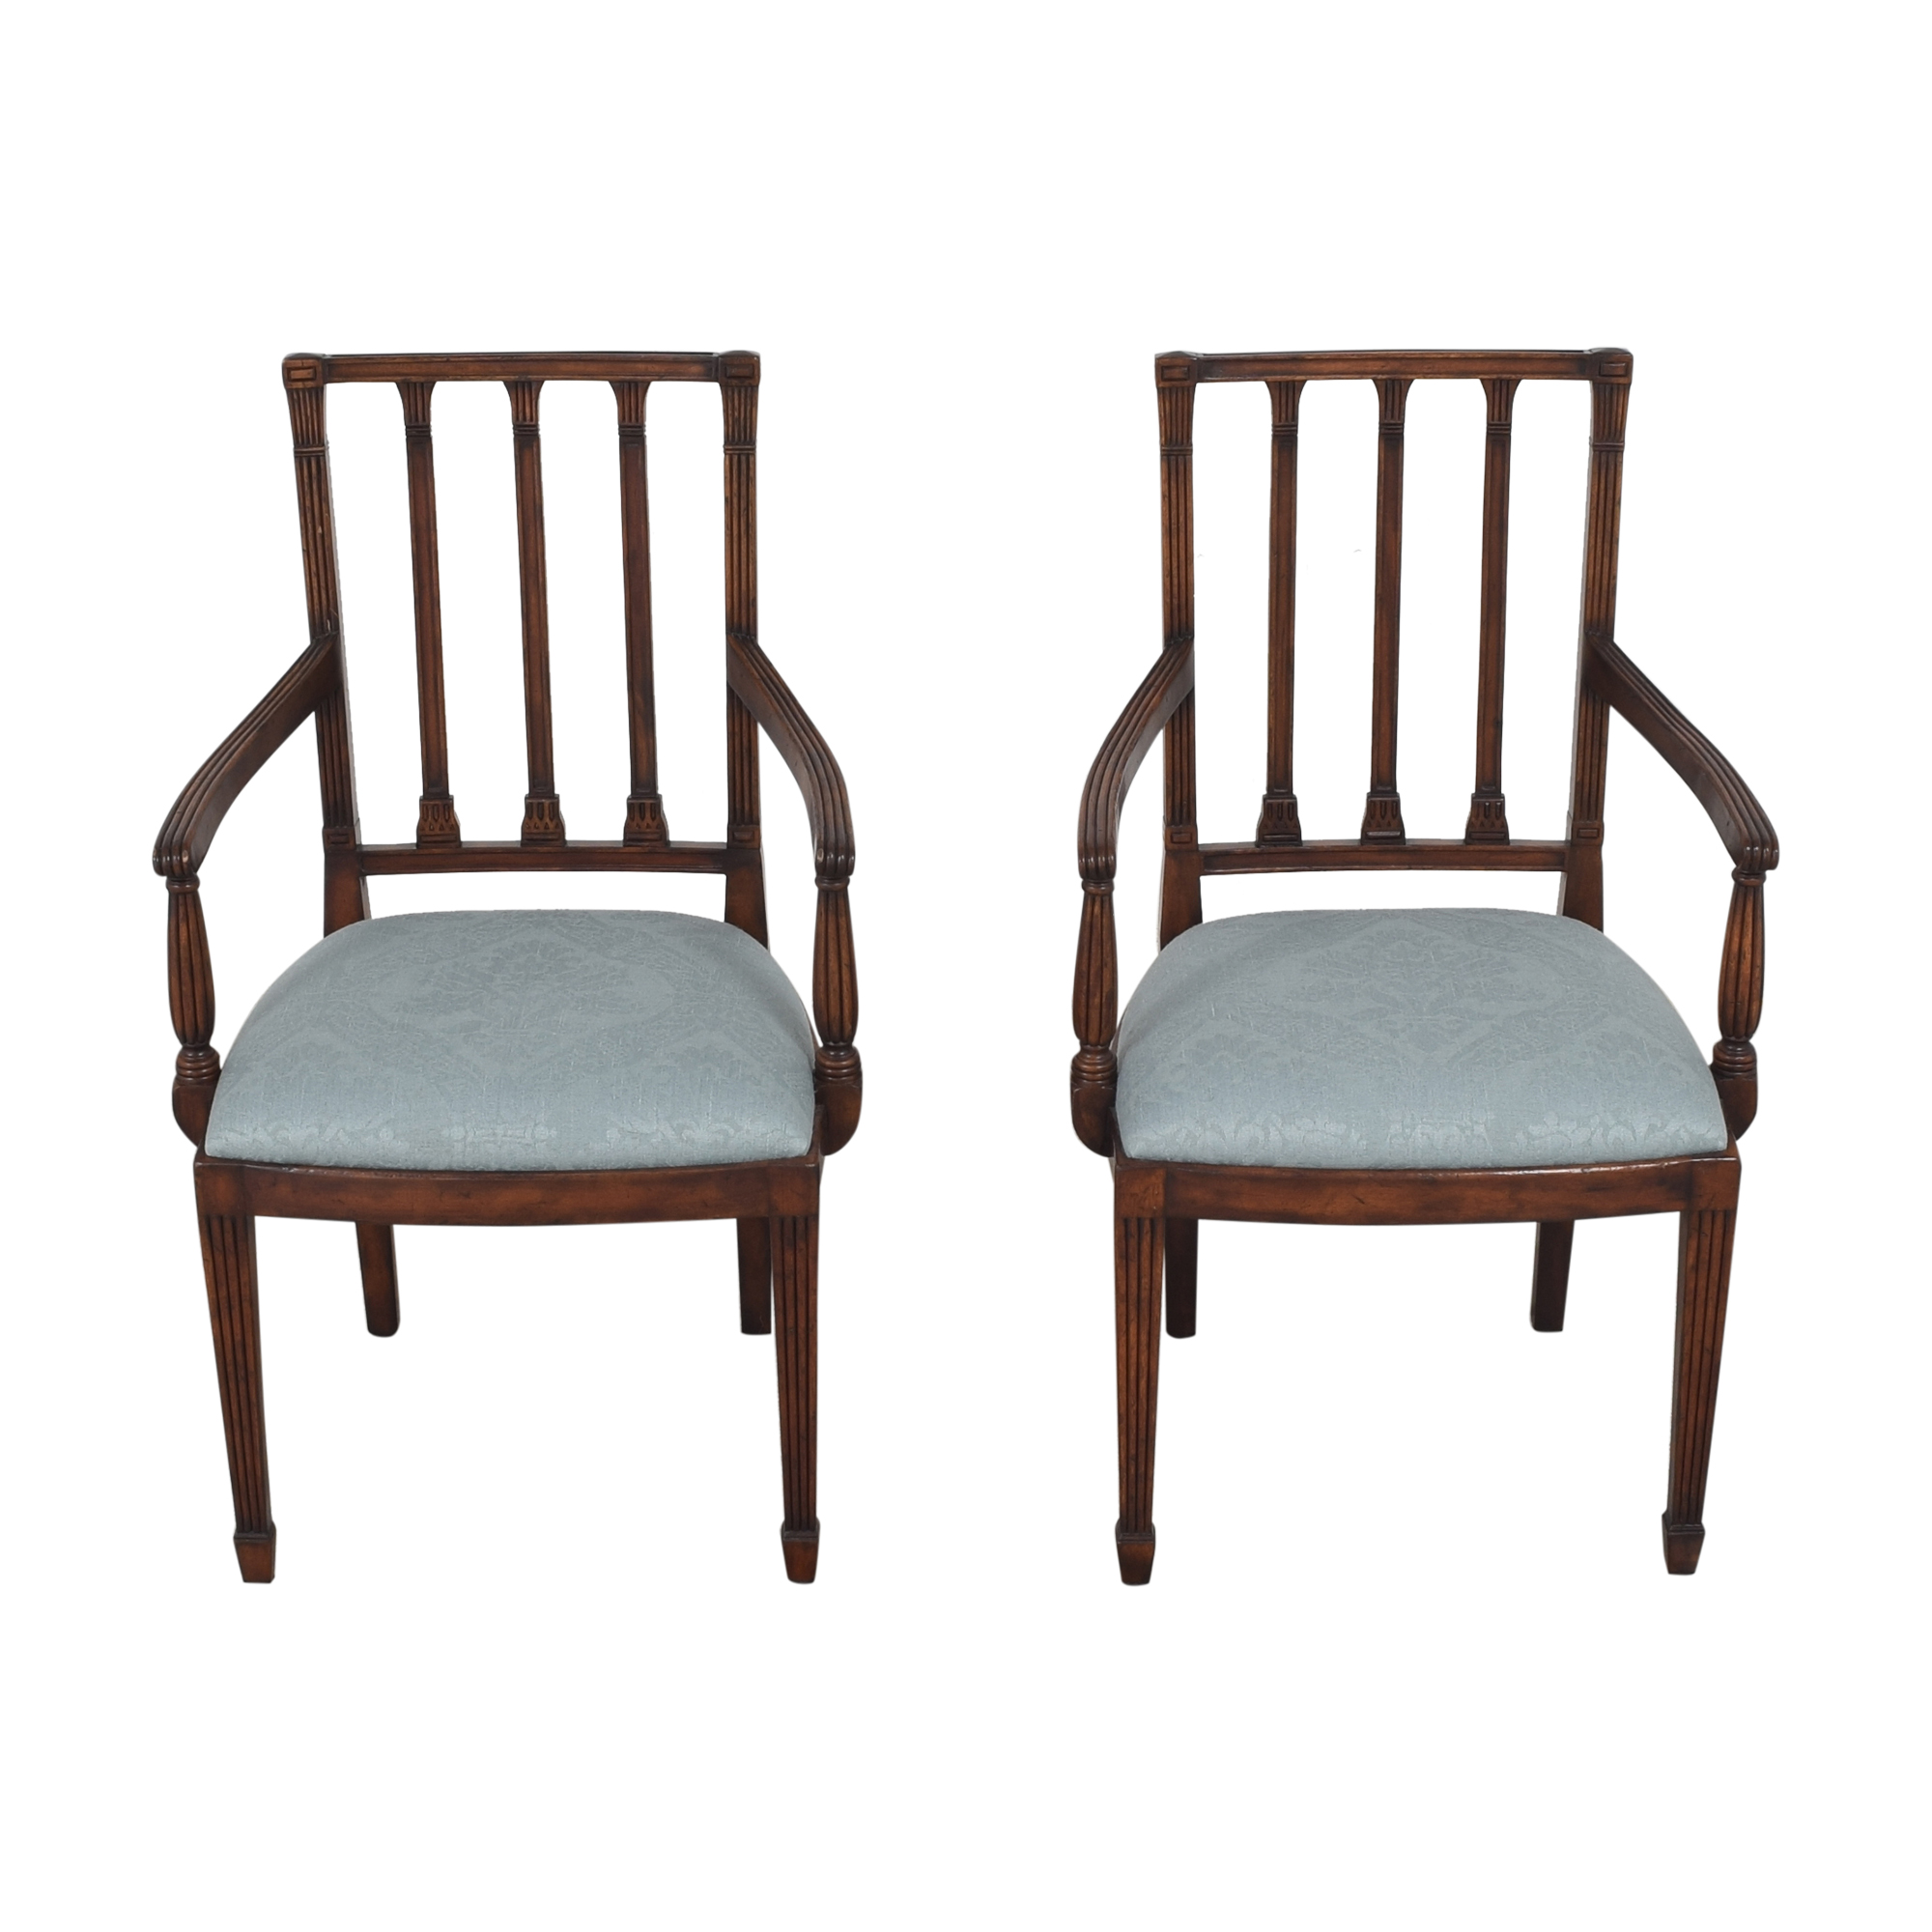 English Country Home English Country Home Upholstered Dining Arm Chairs coupon